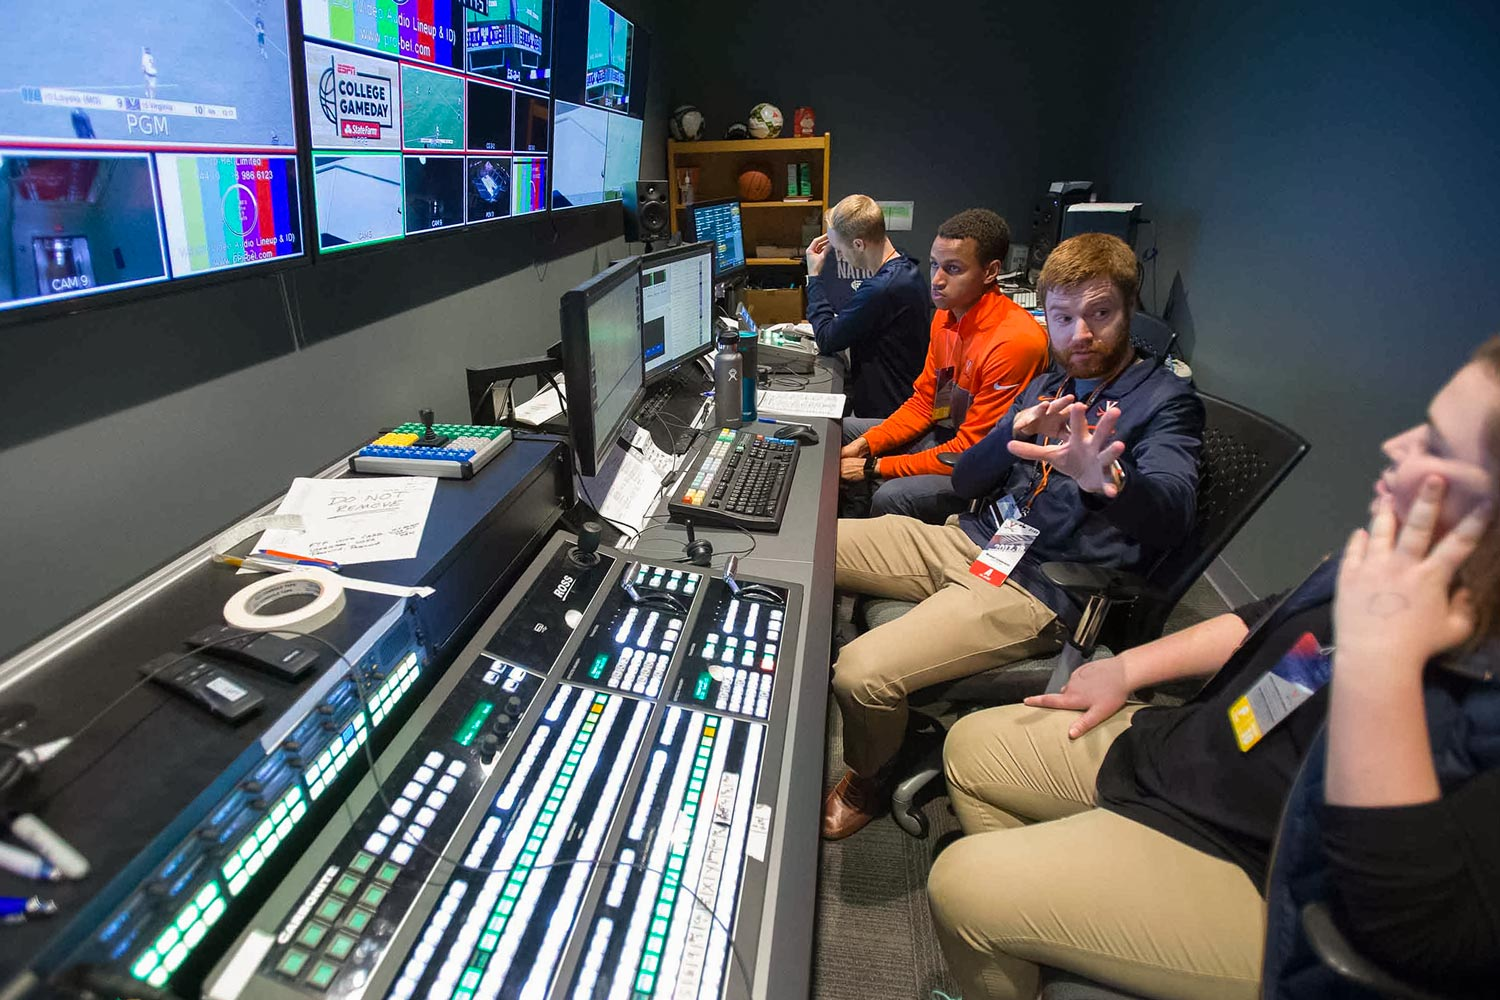 UVA Video Services senior producer Michael Szlamowicz, center, helps media production students learn about the John Paul Jones Arena production studio.